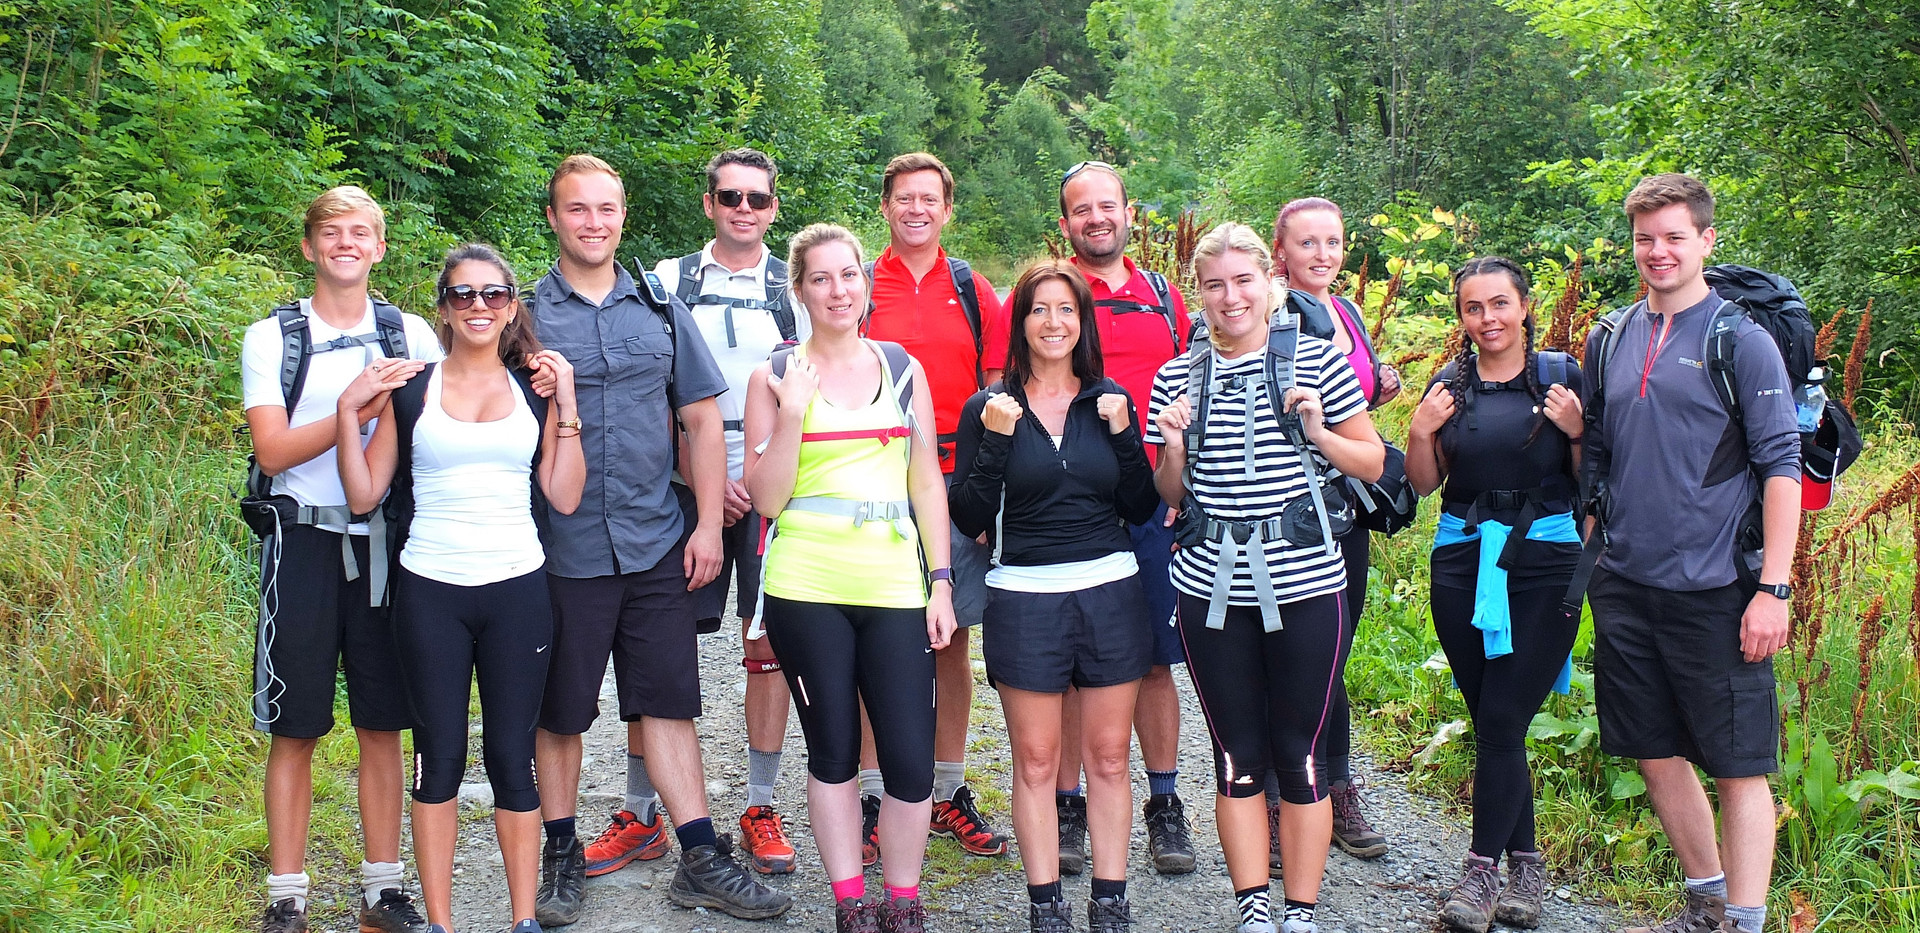 The participants of the Norway Hiking Trip 2016 | Gym | Exercise | Sawbridgeworth | Health | Personal Trainer | Harlow | Training